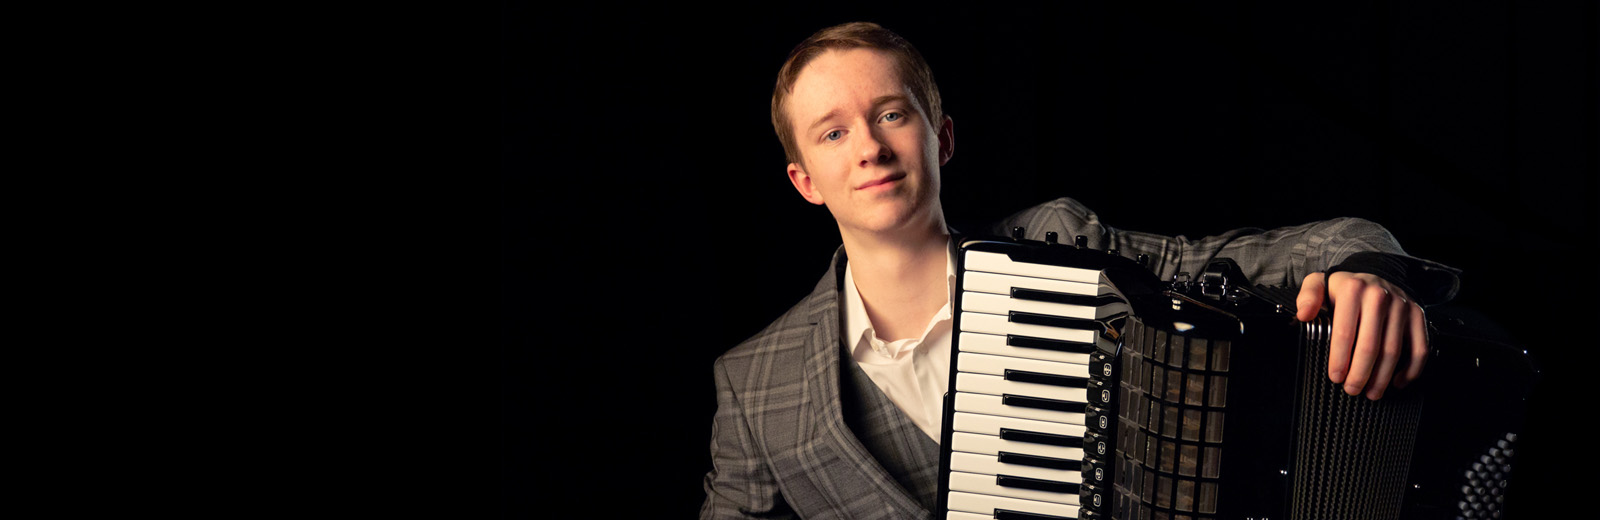 Junior Conservatoire accordionist makes history with podium place at global music contest Image